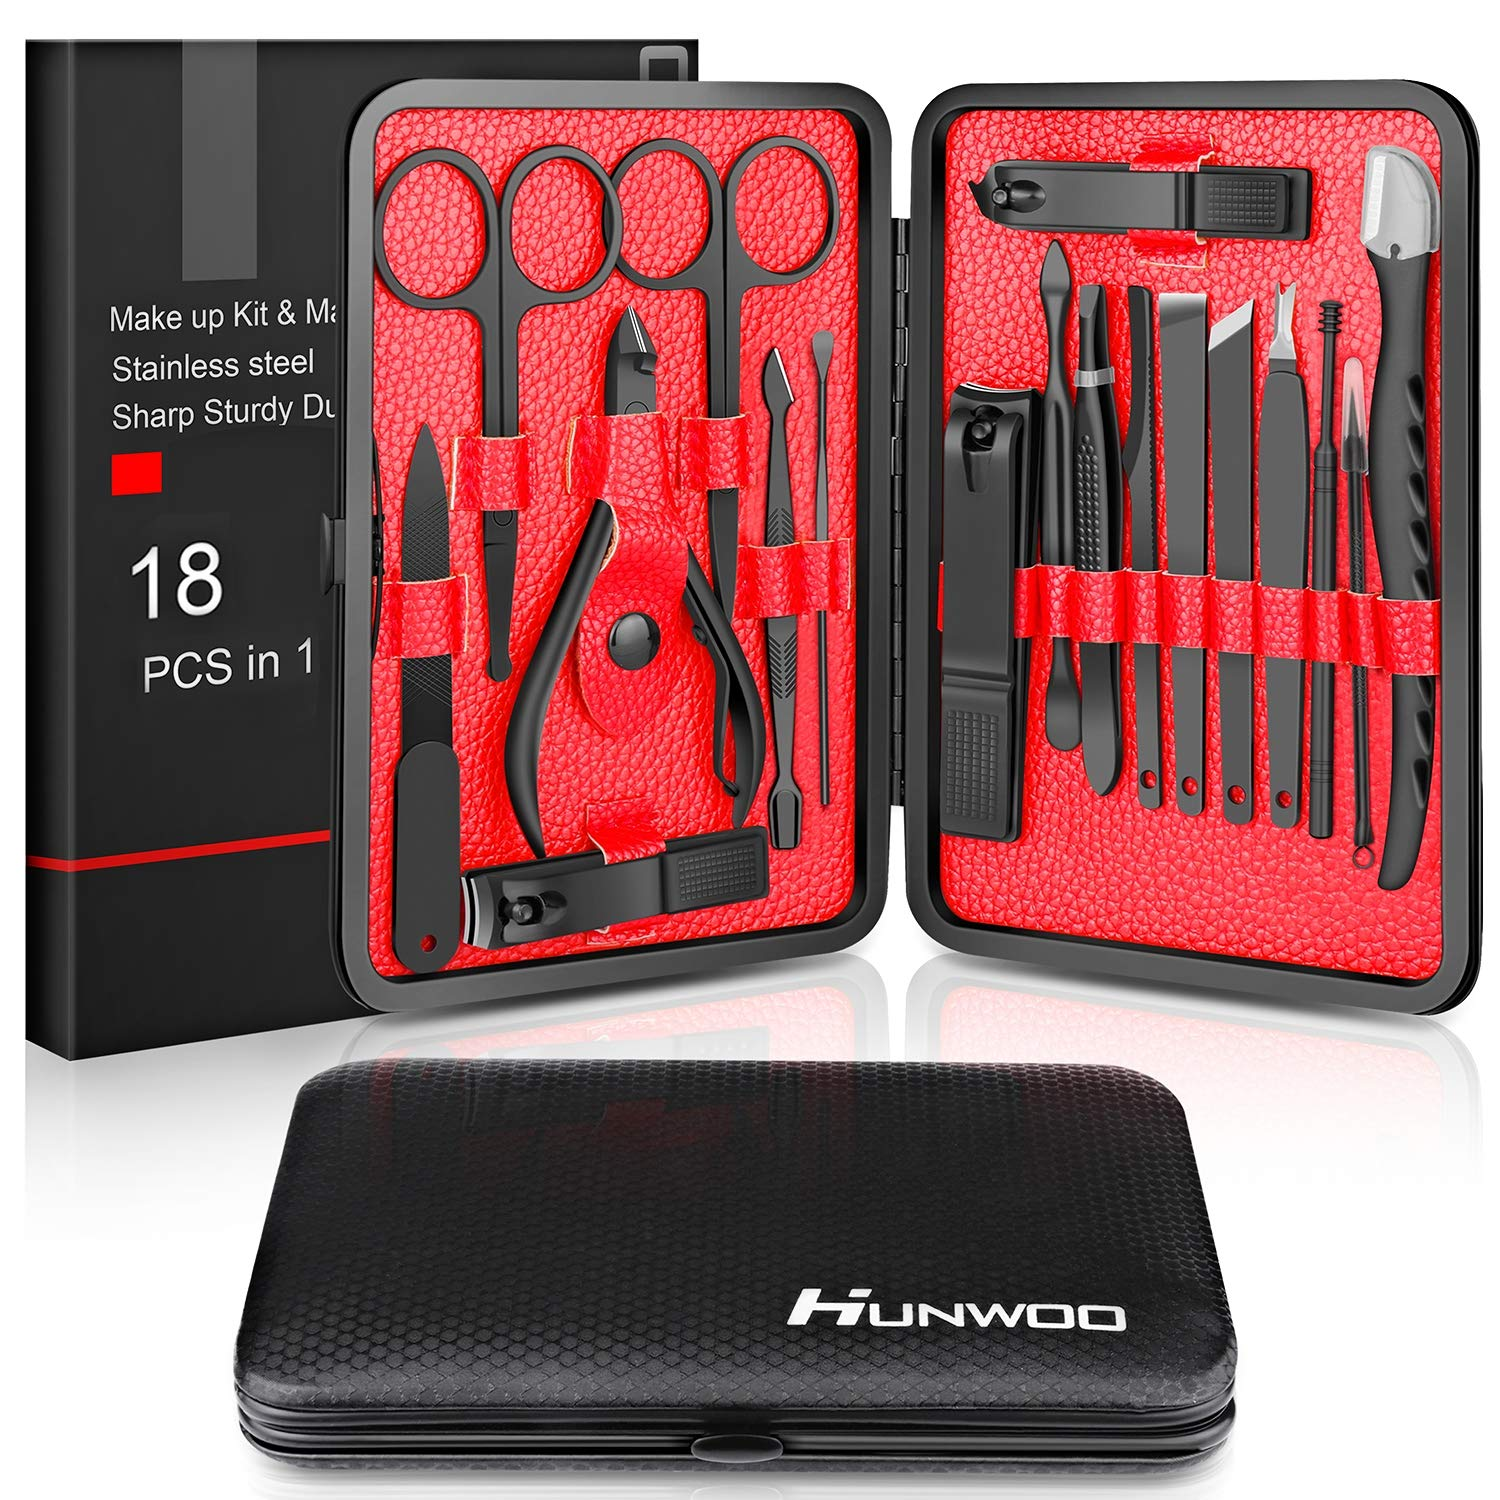 Manicure Set Hunwoo Clippers Stainless Professional